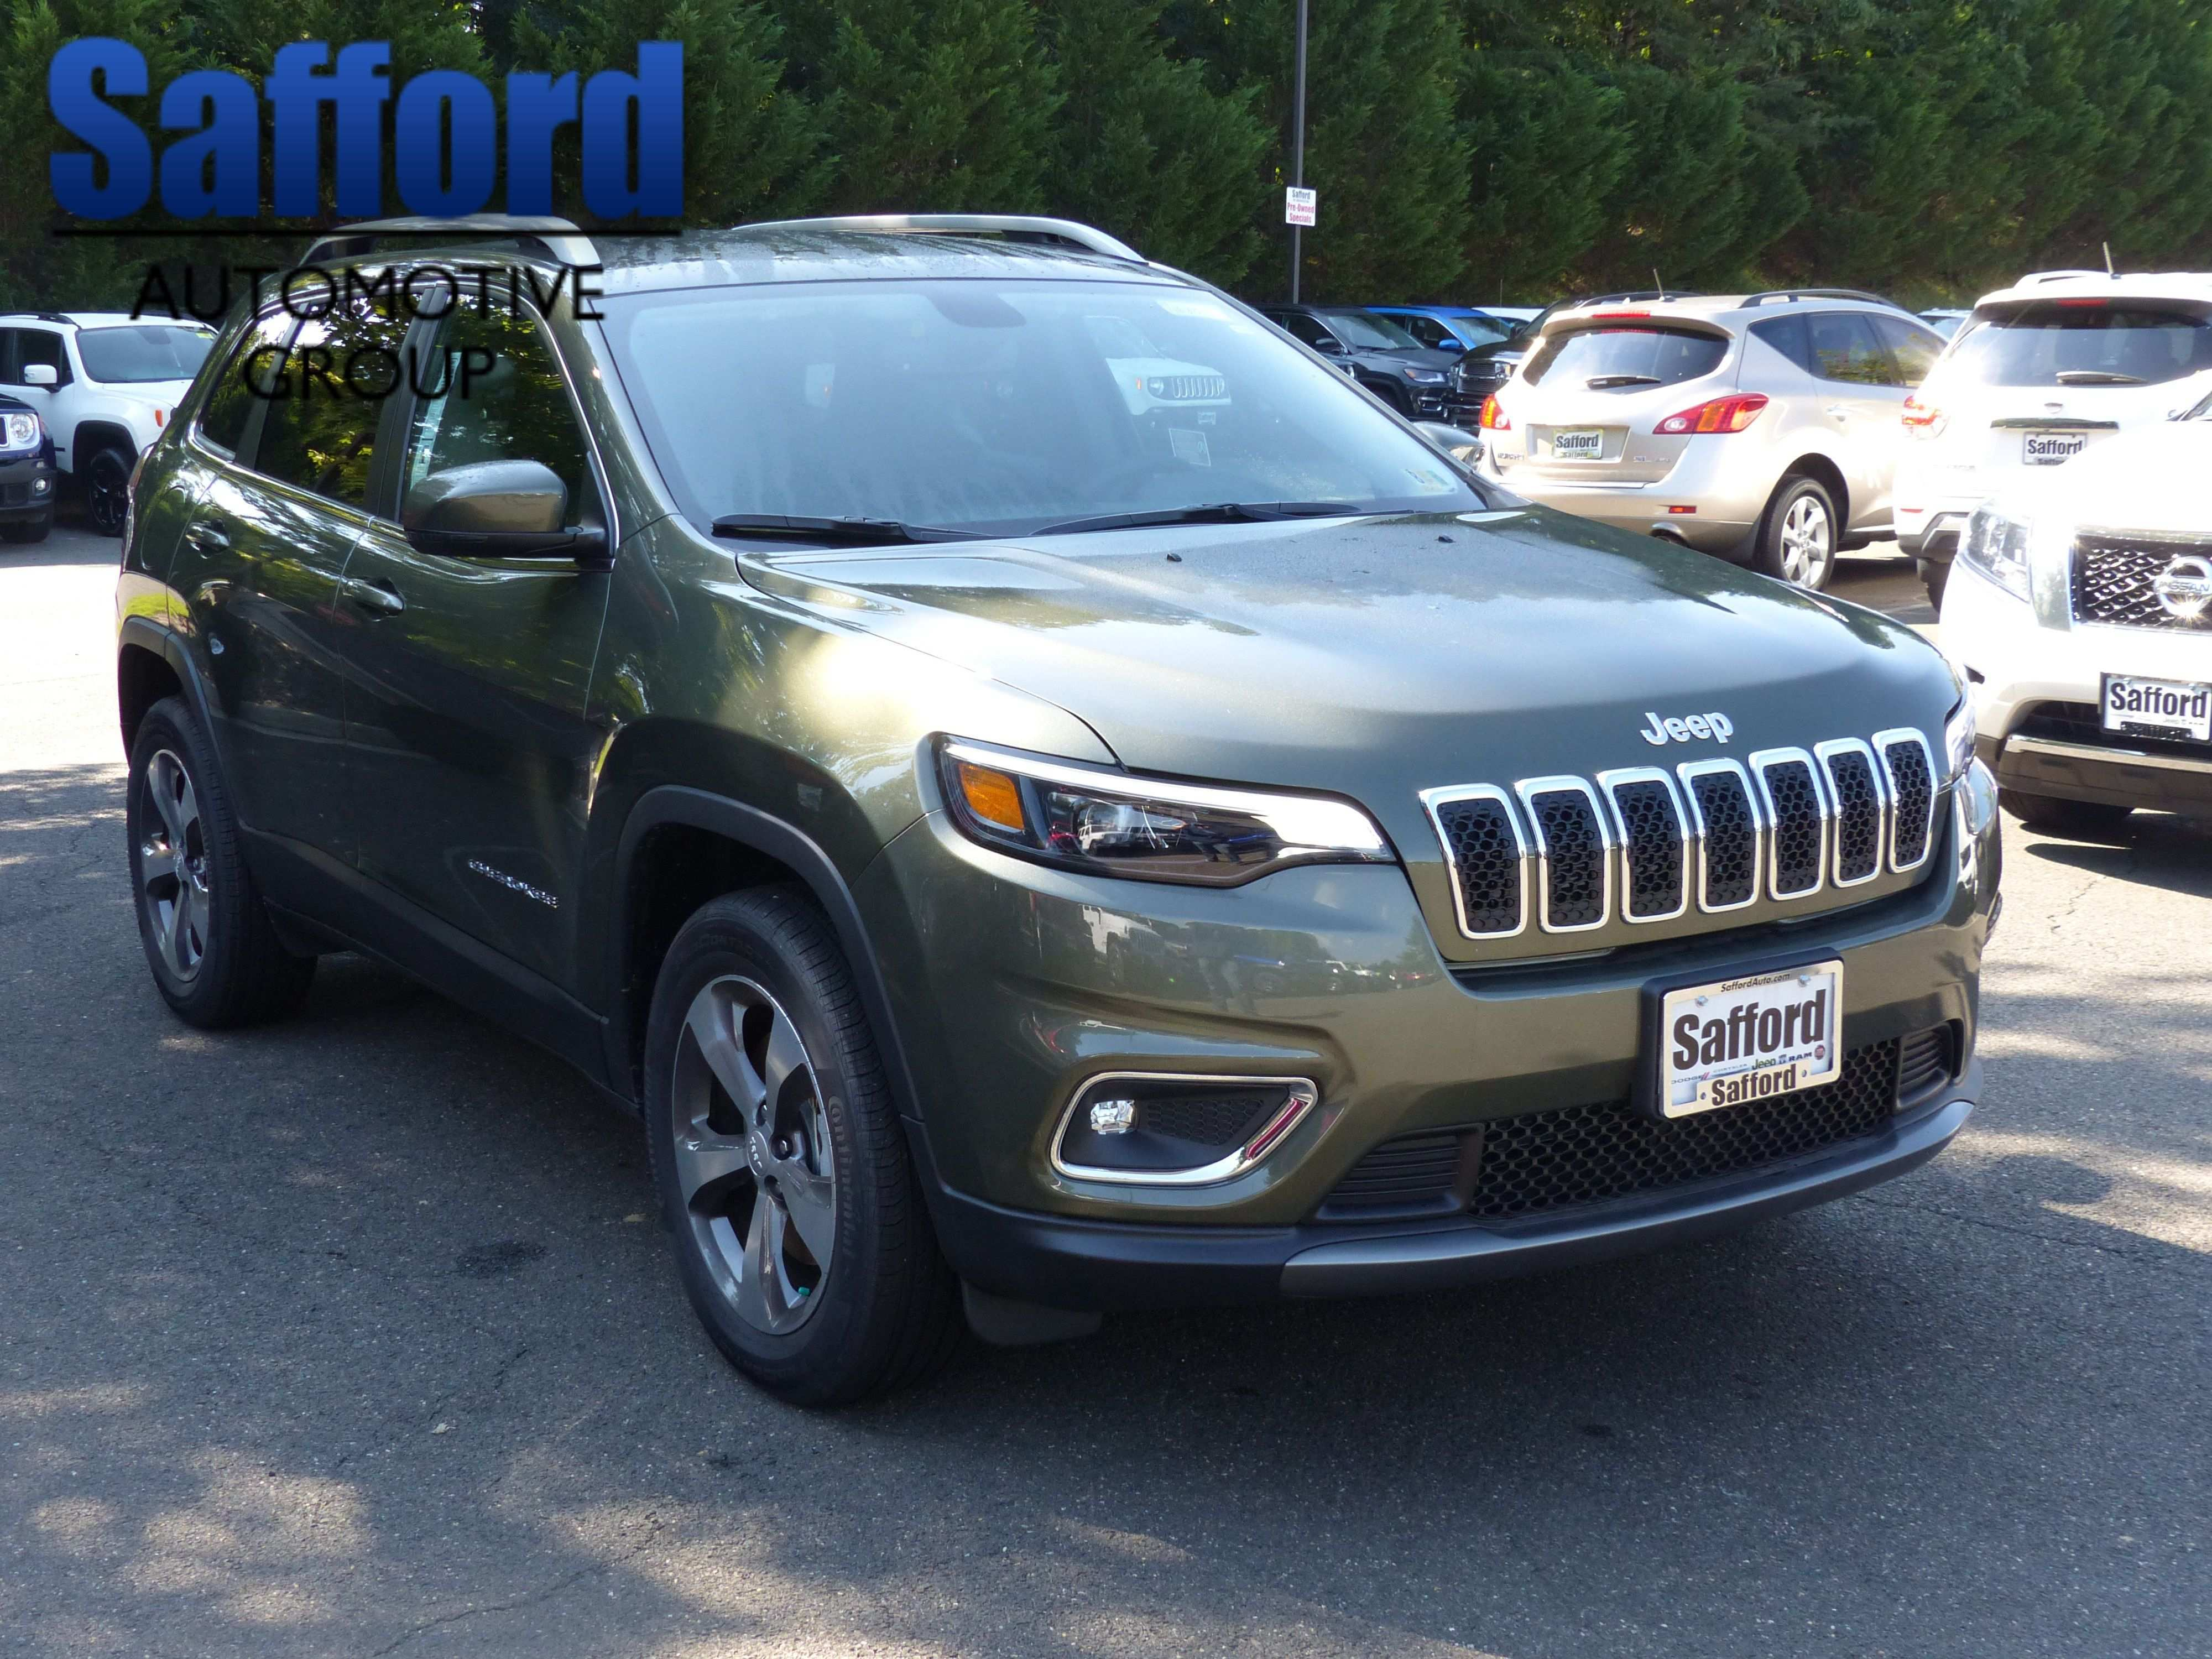 90 All New Best Jeep Cherokee 2019 Anti Theft Code Exterior Pricing by Best Jeep Cherokee 2019 Anti Theft Code Exterior